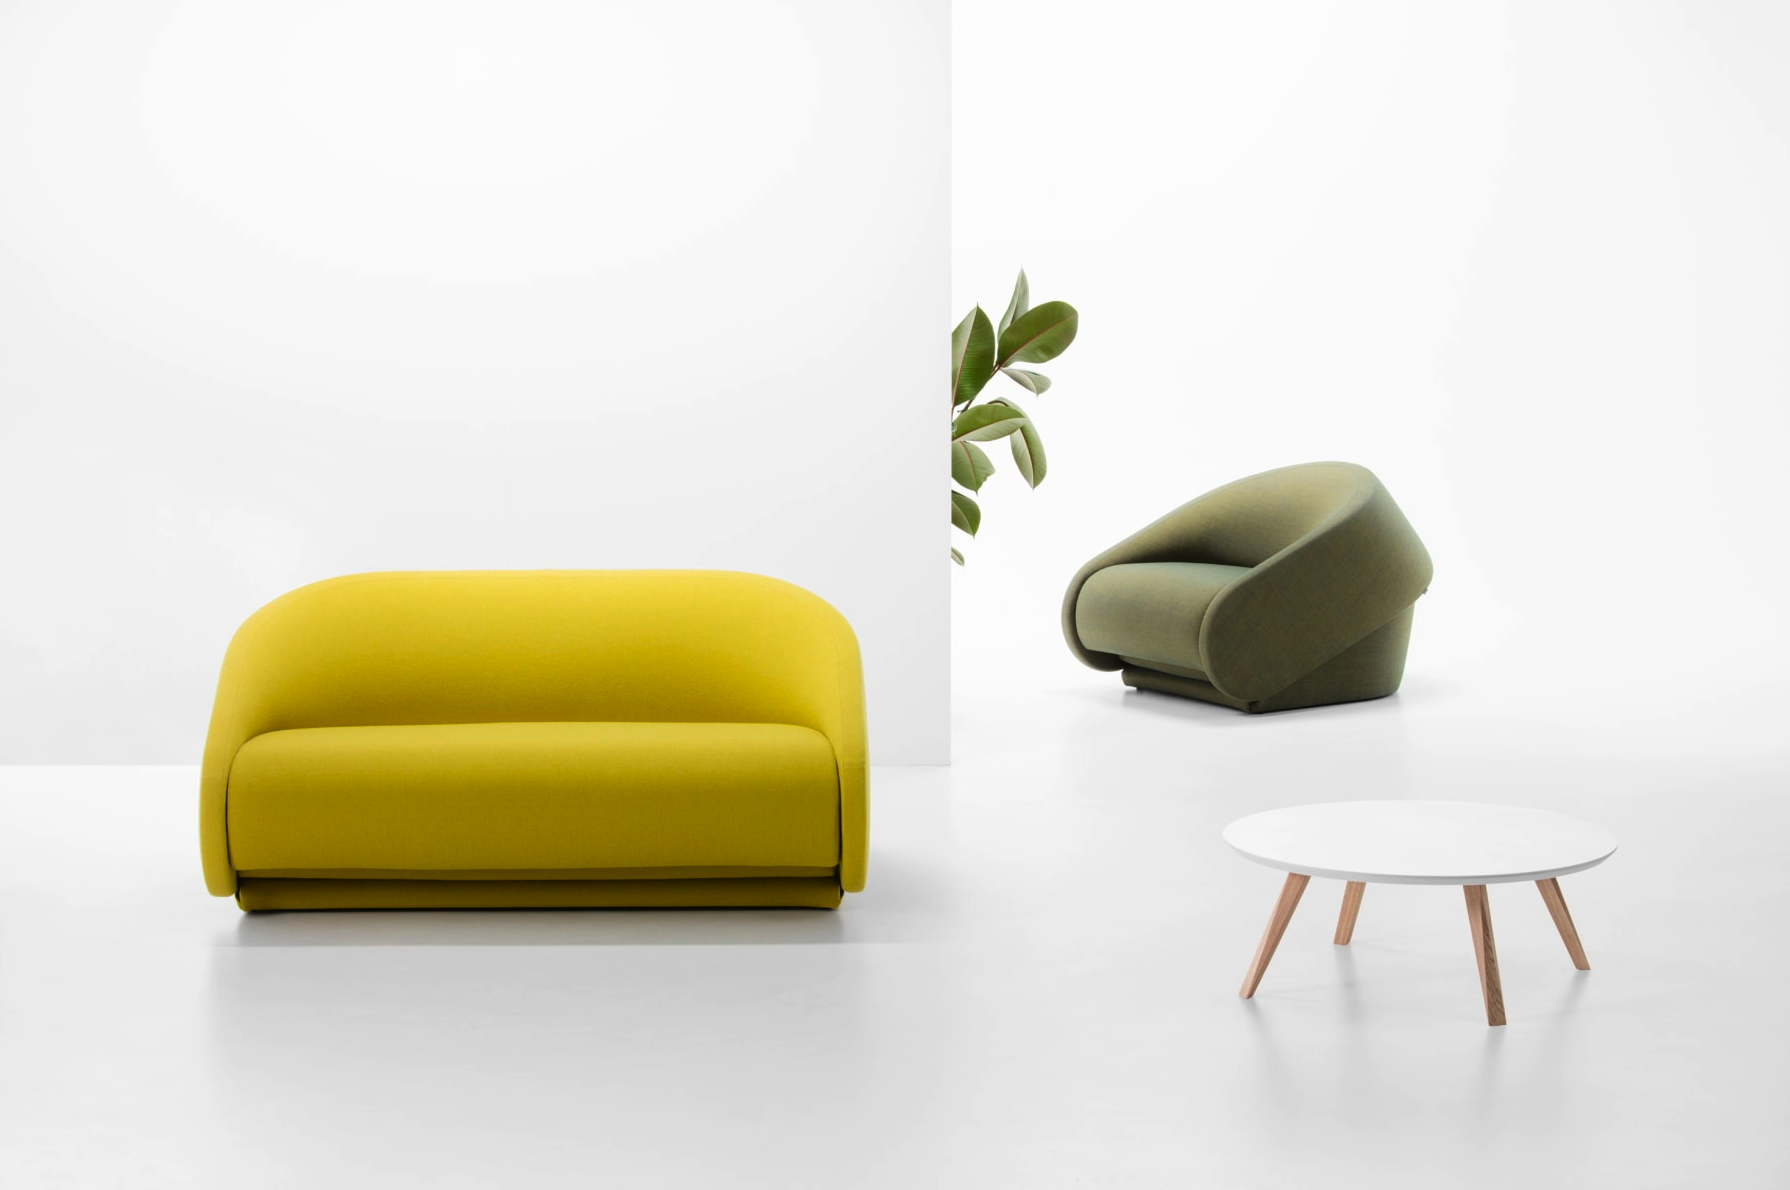 Prostoria Up-lift sofabed / armchair